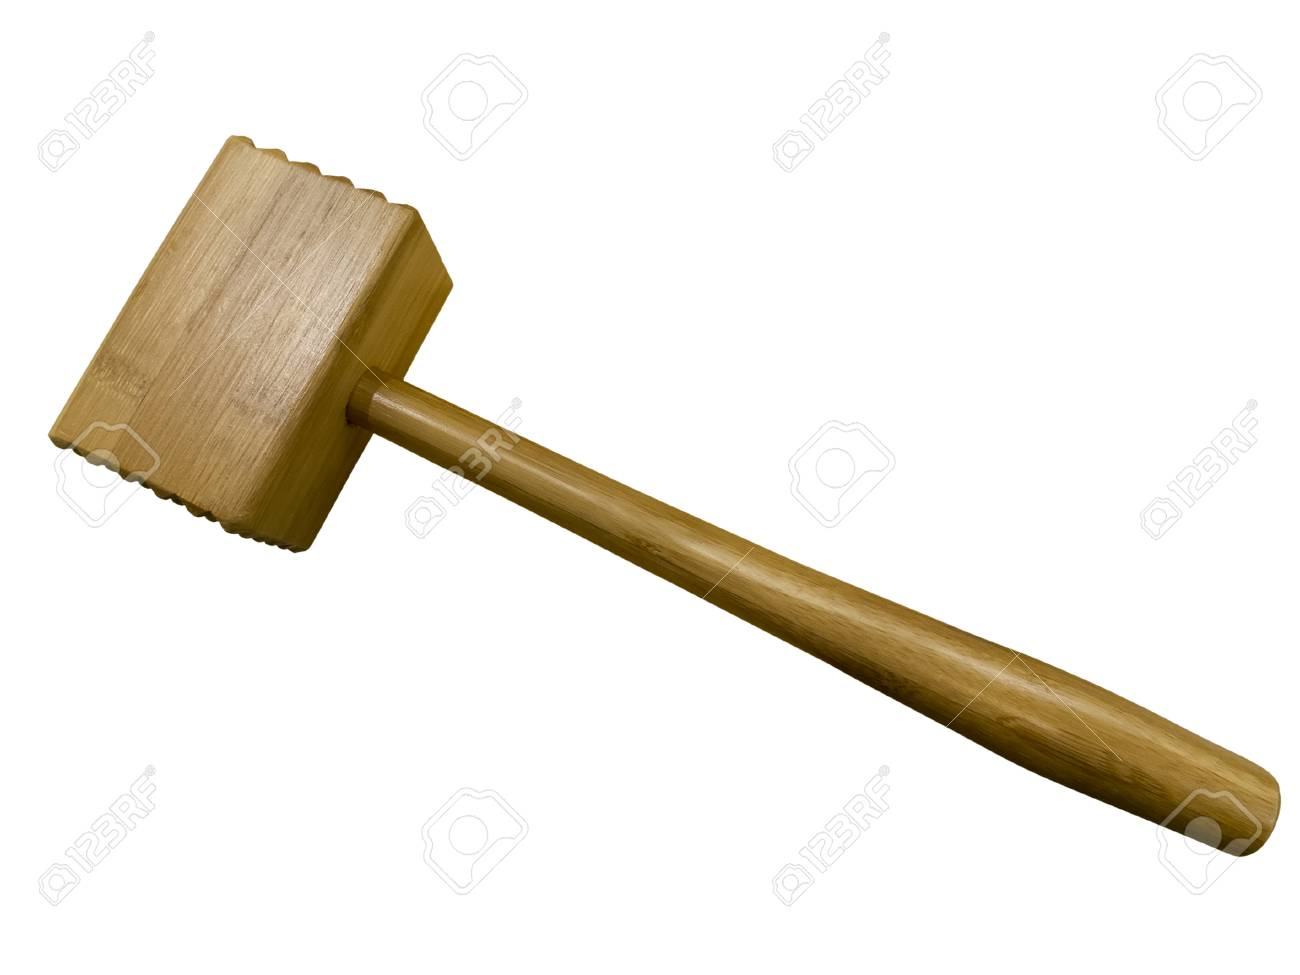 wooden meat mallet isolated